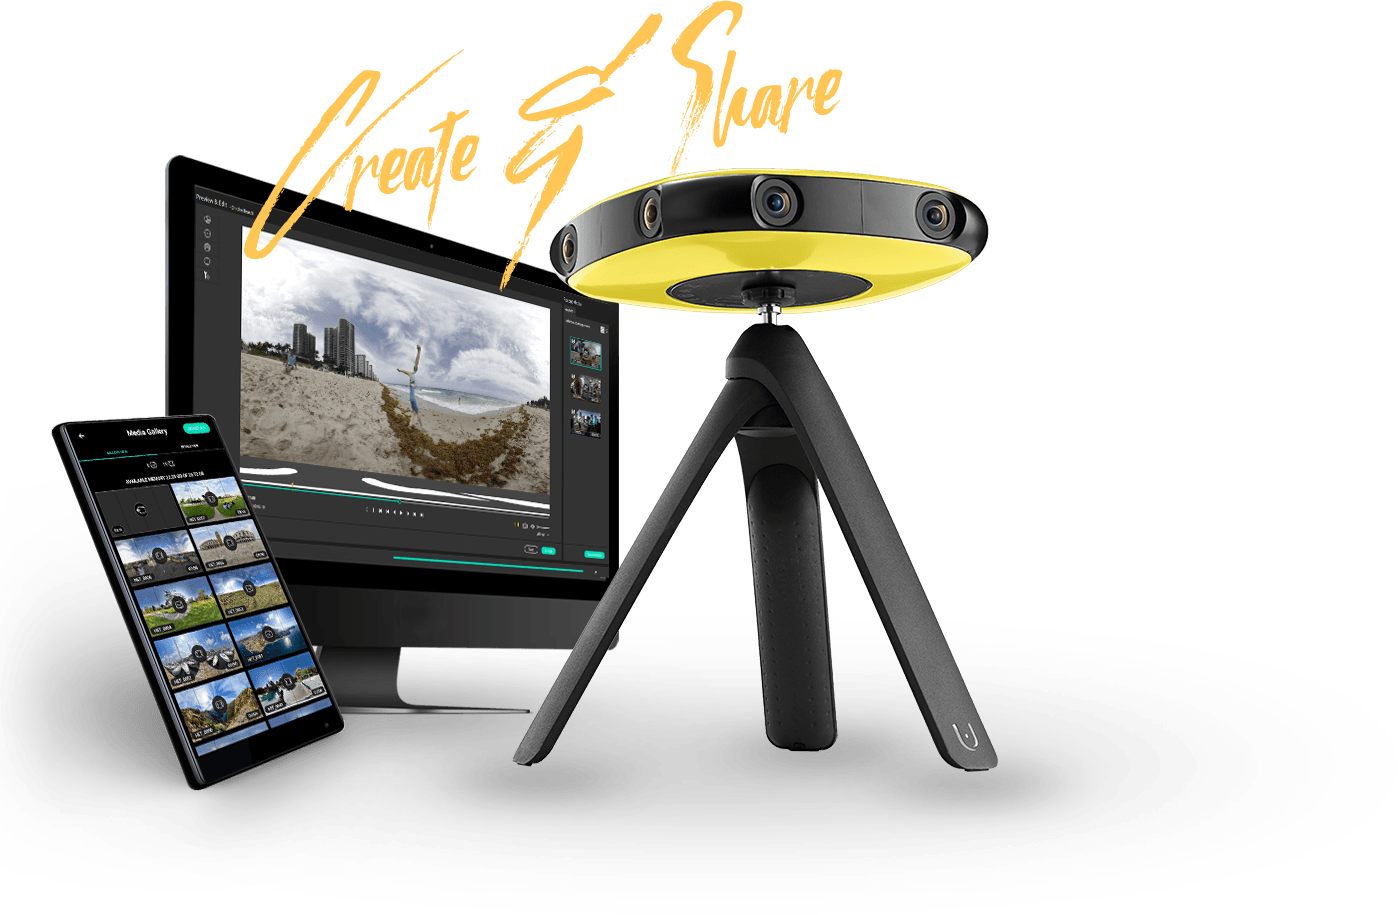 create and share with Vuze VR camera, studio and app